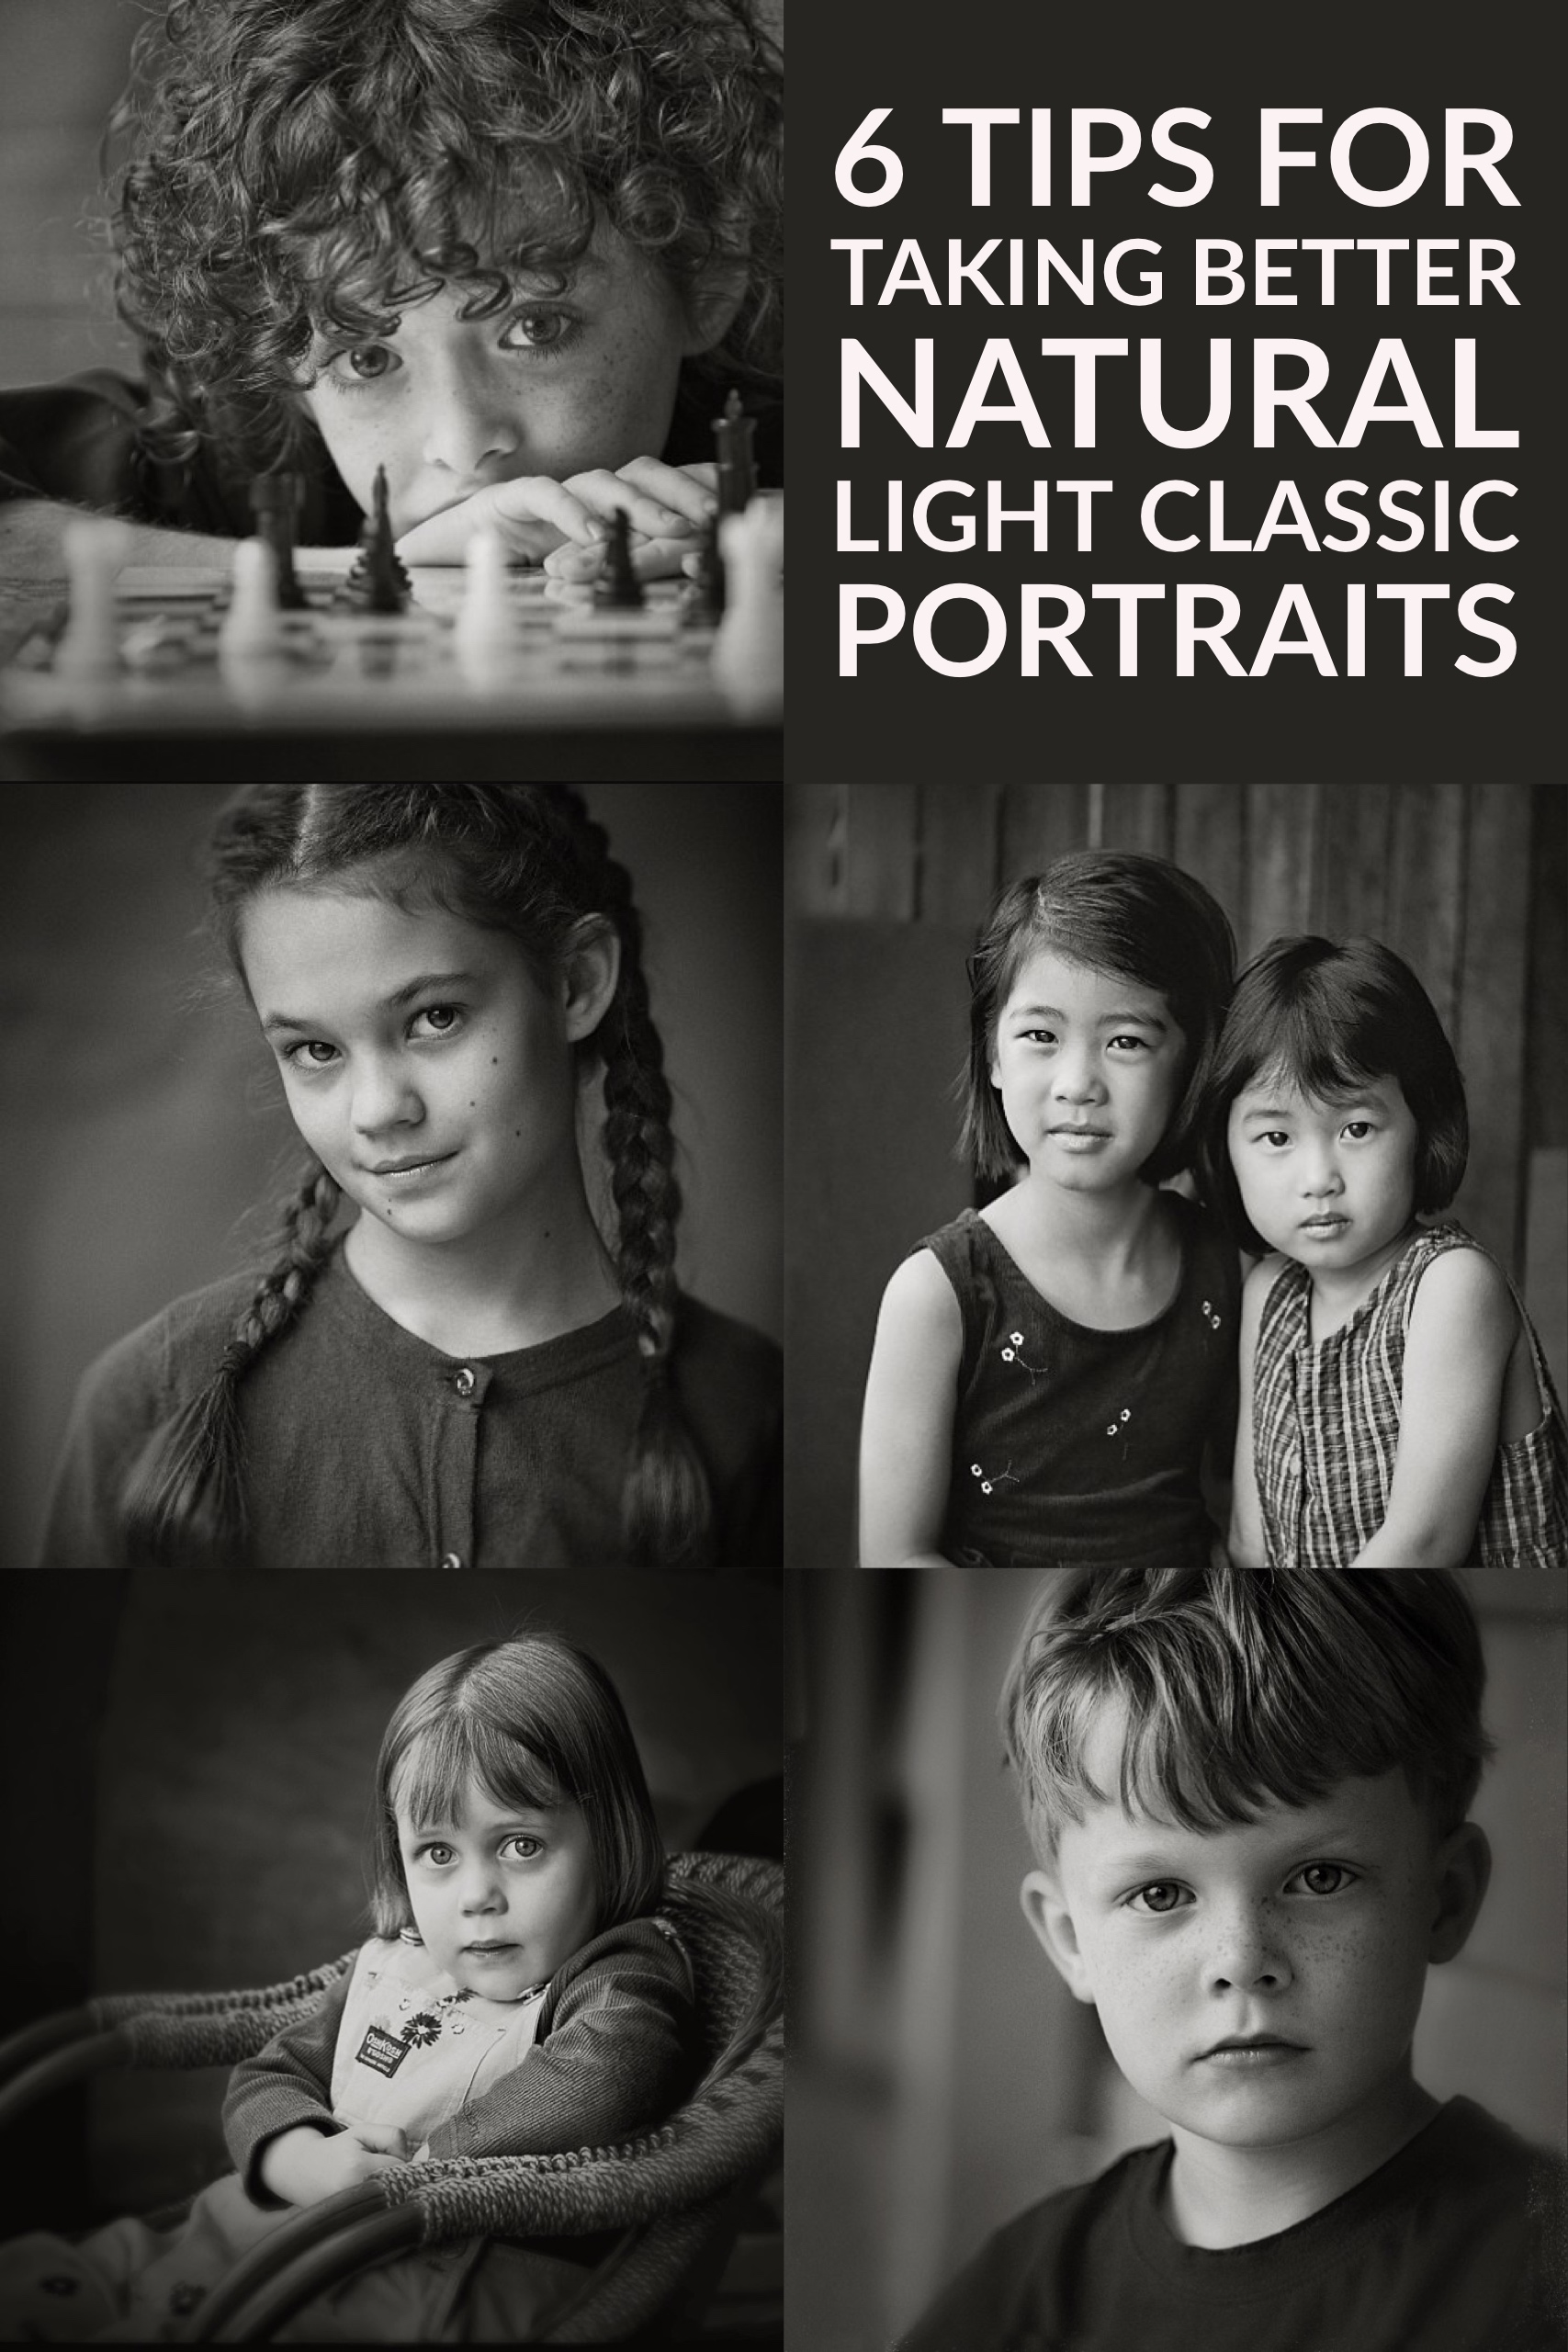 6 Tips for Taking Better Natural Light Classic Portraits